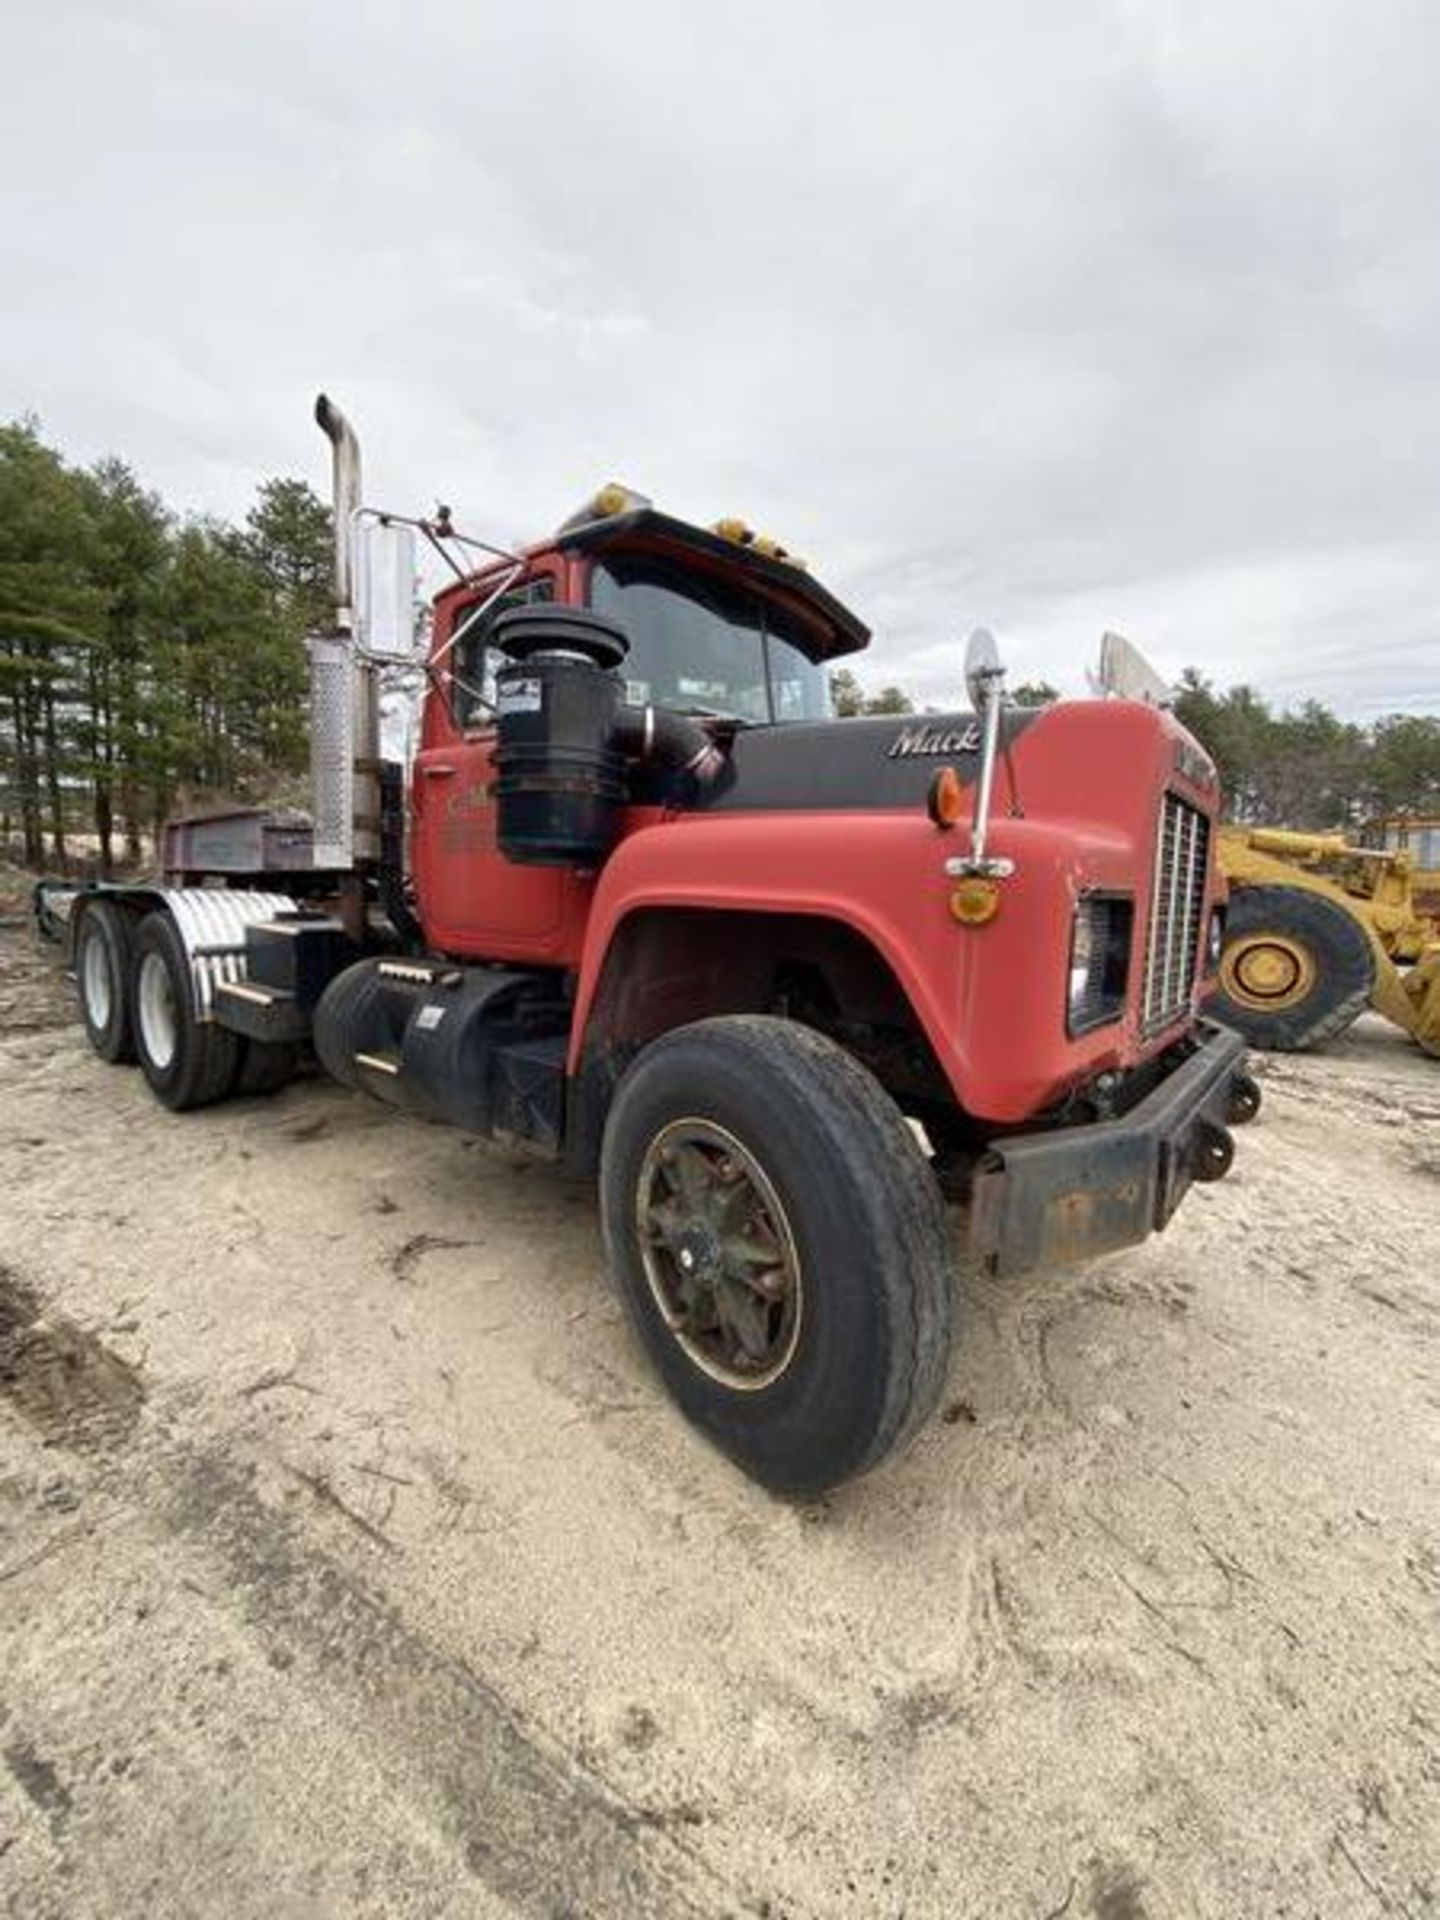 1986 Mack RD688SX Tandem Axle Tractor VIN 1M2P143Y8GA004351, Meter Reads 301,625 Miles, Day Cab, - Image 9 of 22